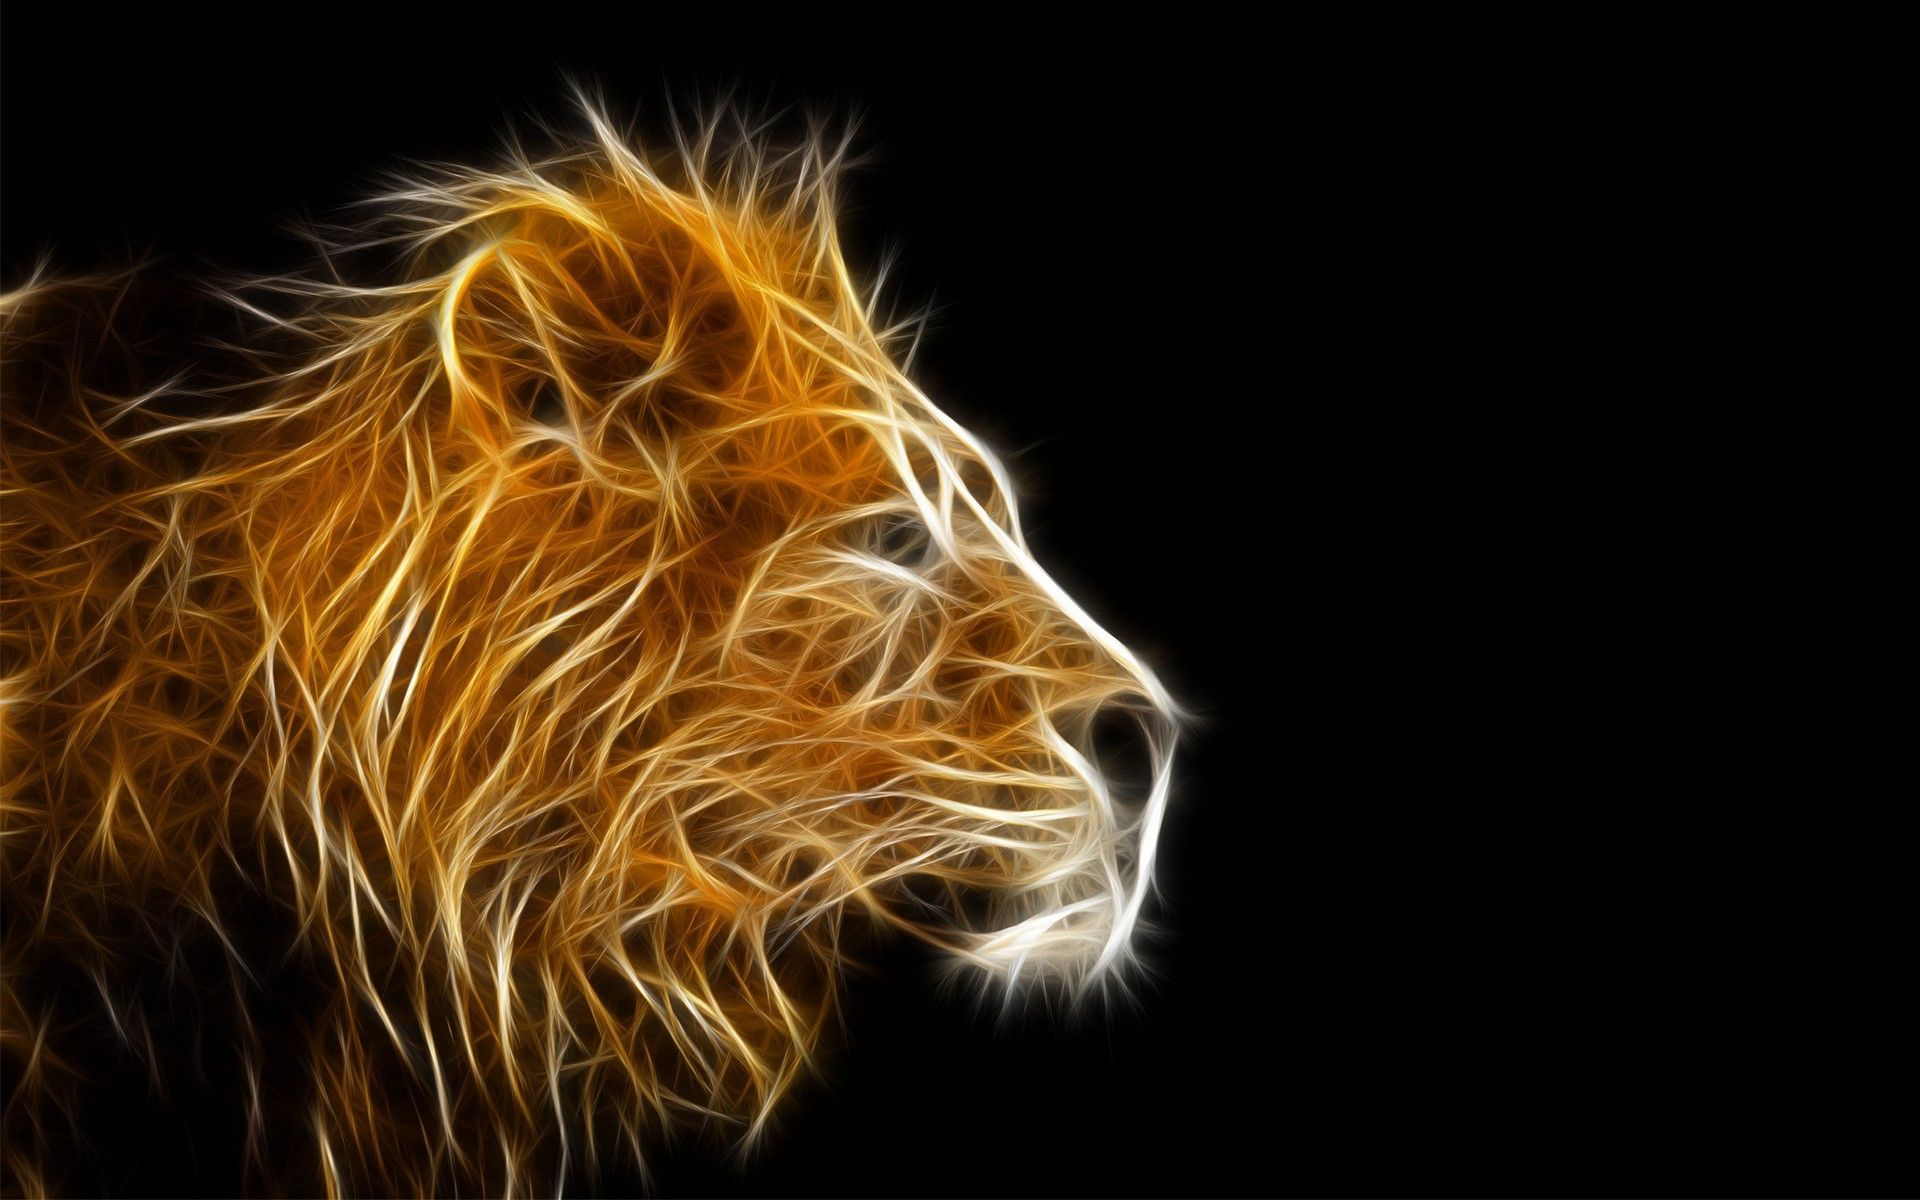 Lion Desktop wallpaper hd widescreen free download 1366x768